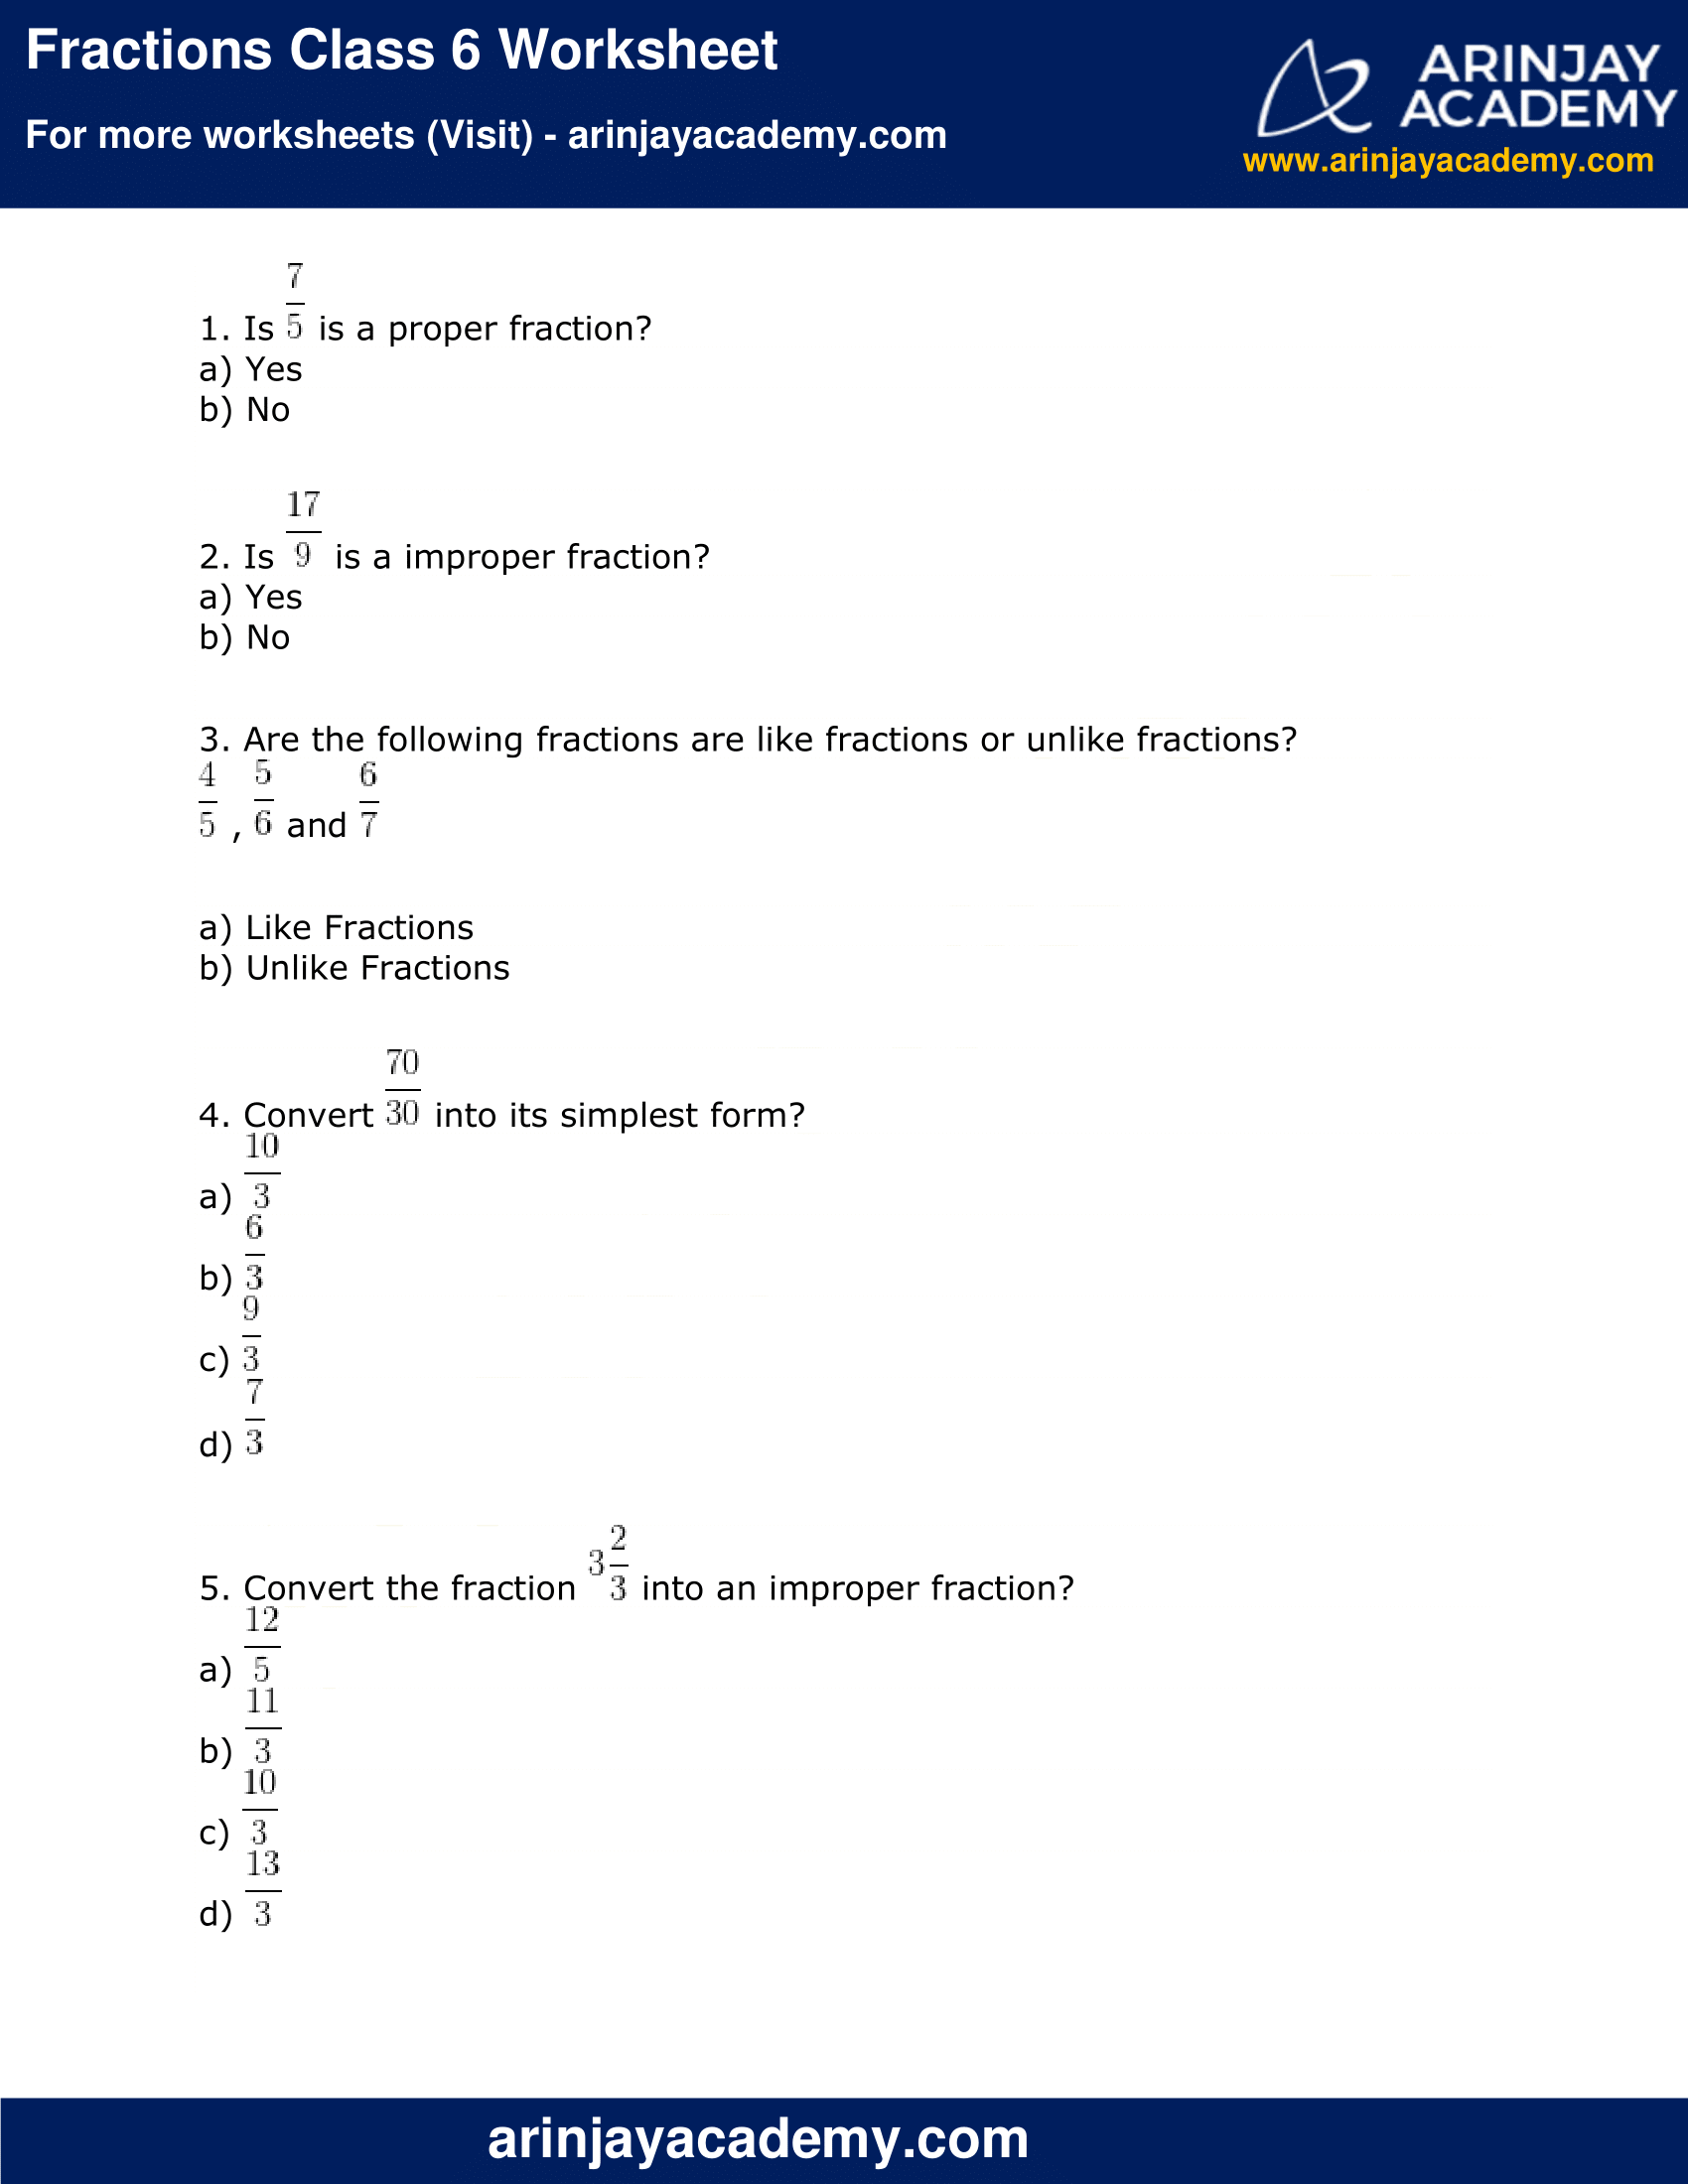 Fractions Class 6 Worksheet image 1